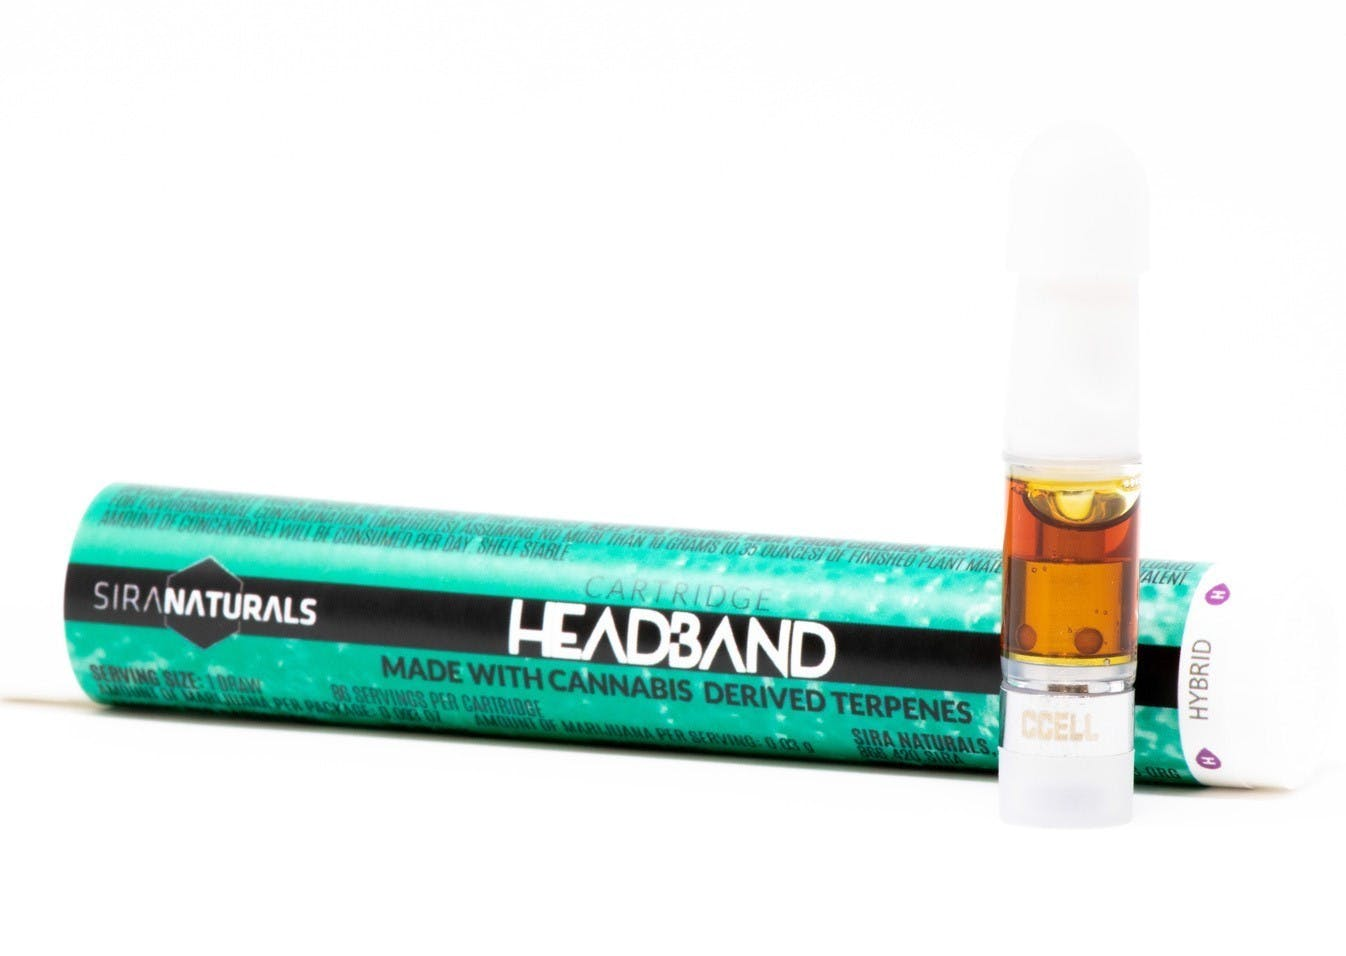 concentrate-sira-naturals-cannabis-terpene-cartridge-headband